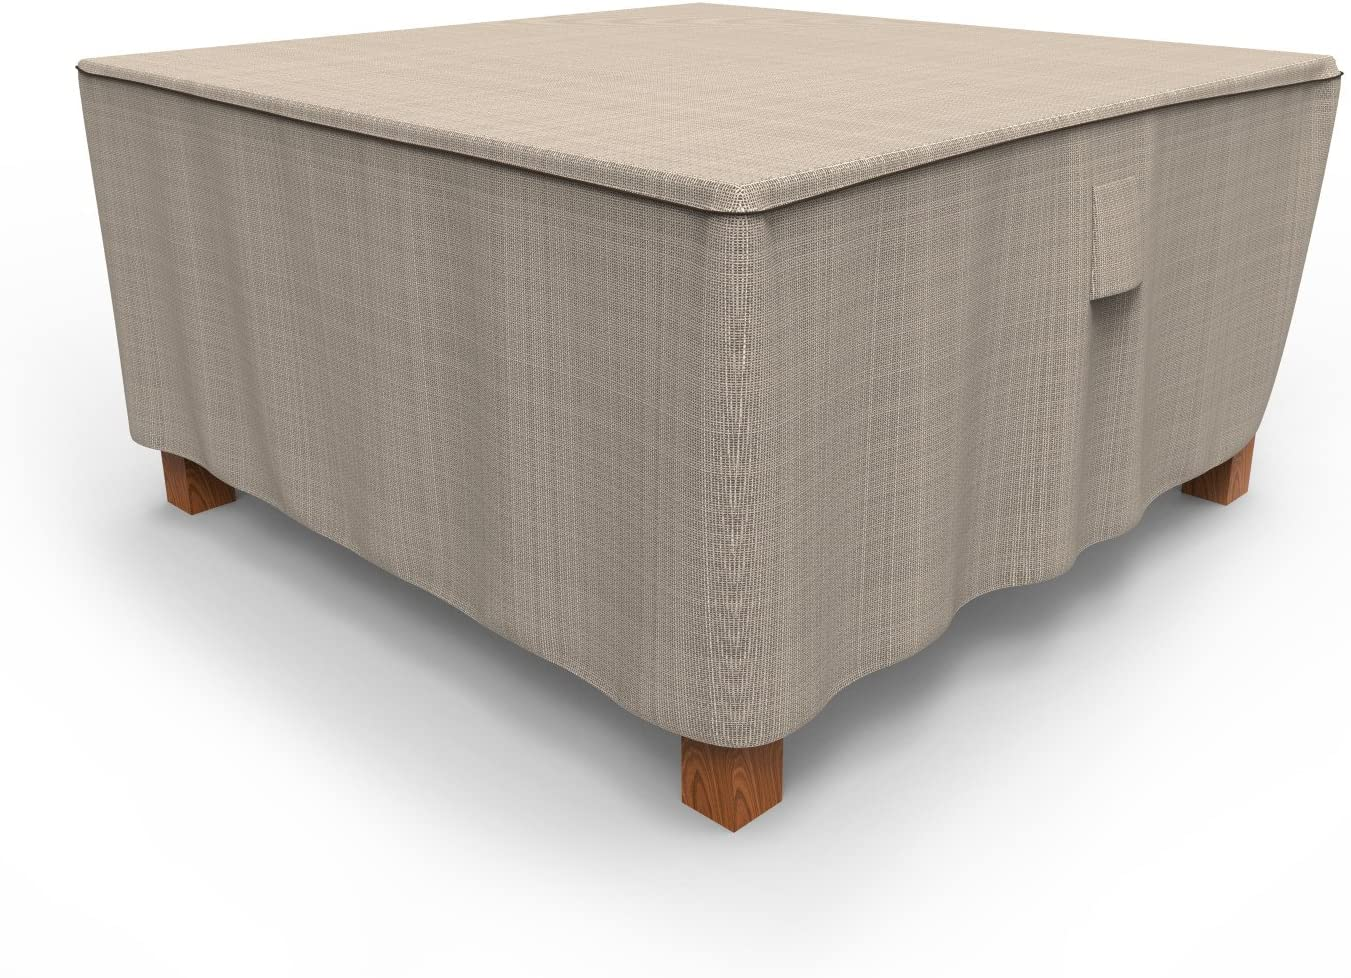 Budge P5A25PM1 English Garden Square Patio Table Cover Heavy Duty and Waterproof, Large, Two-Tone Tan